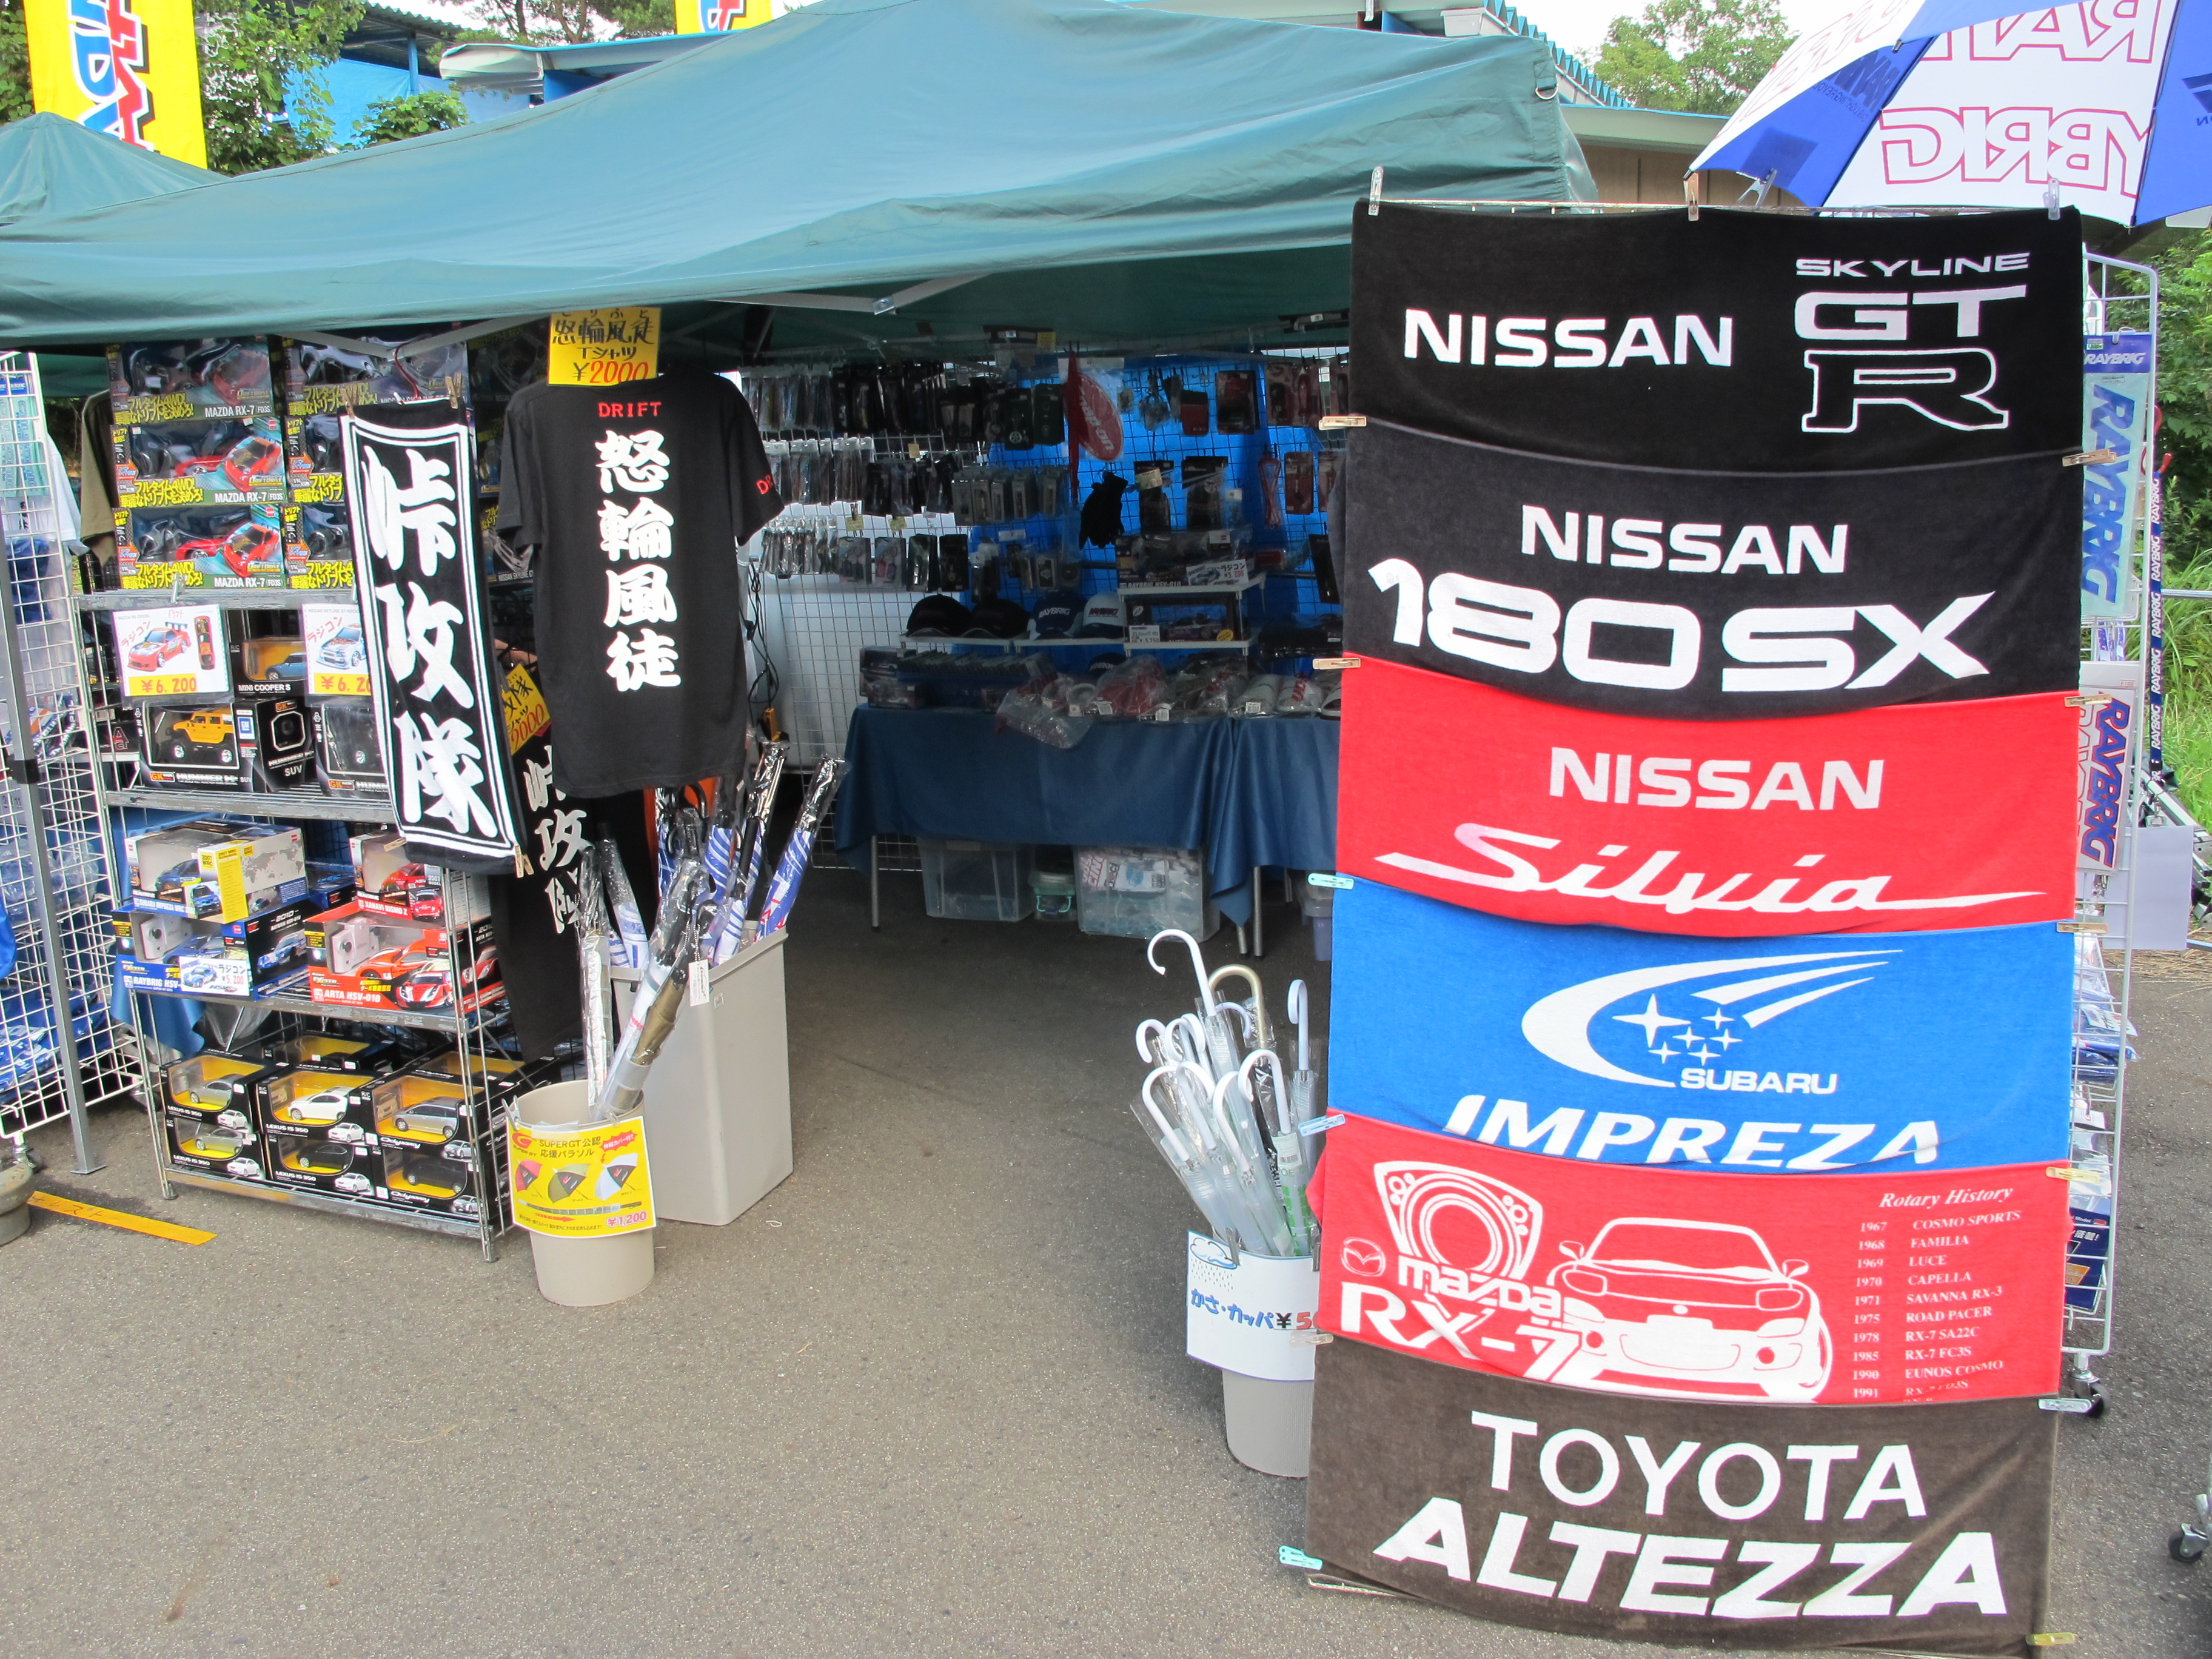 the japanese culture of drift Japan event calendar for july 2018: national holidays, events, festivals.